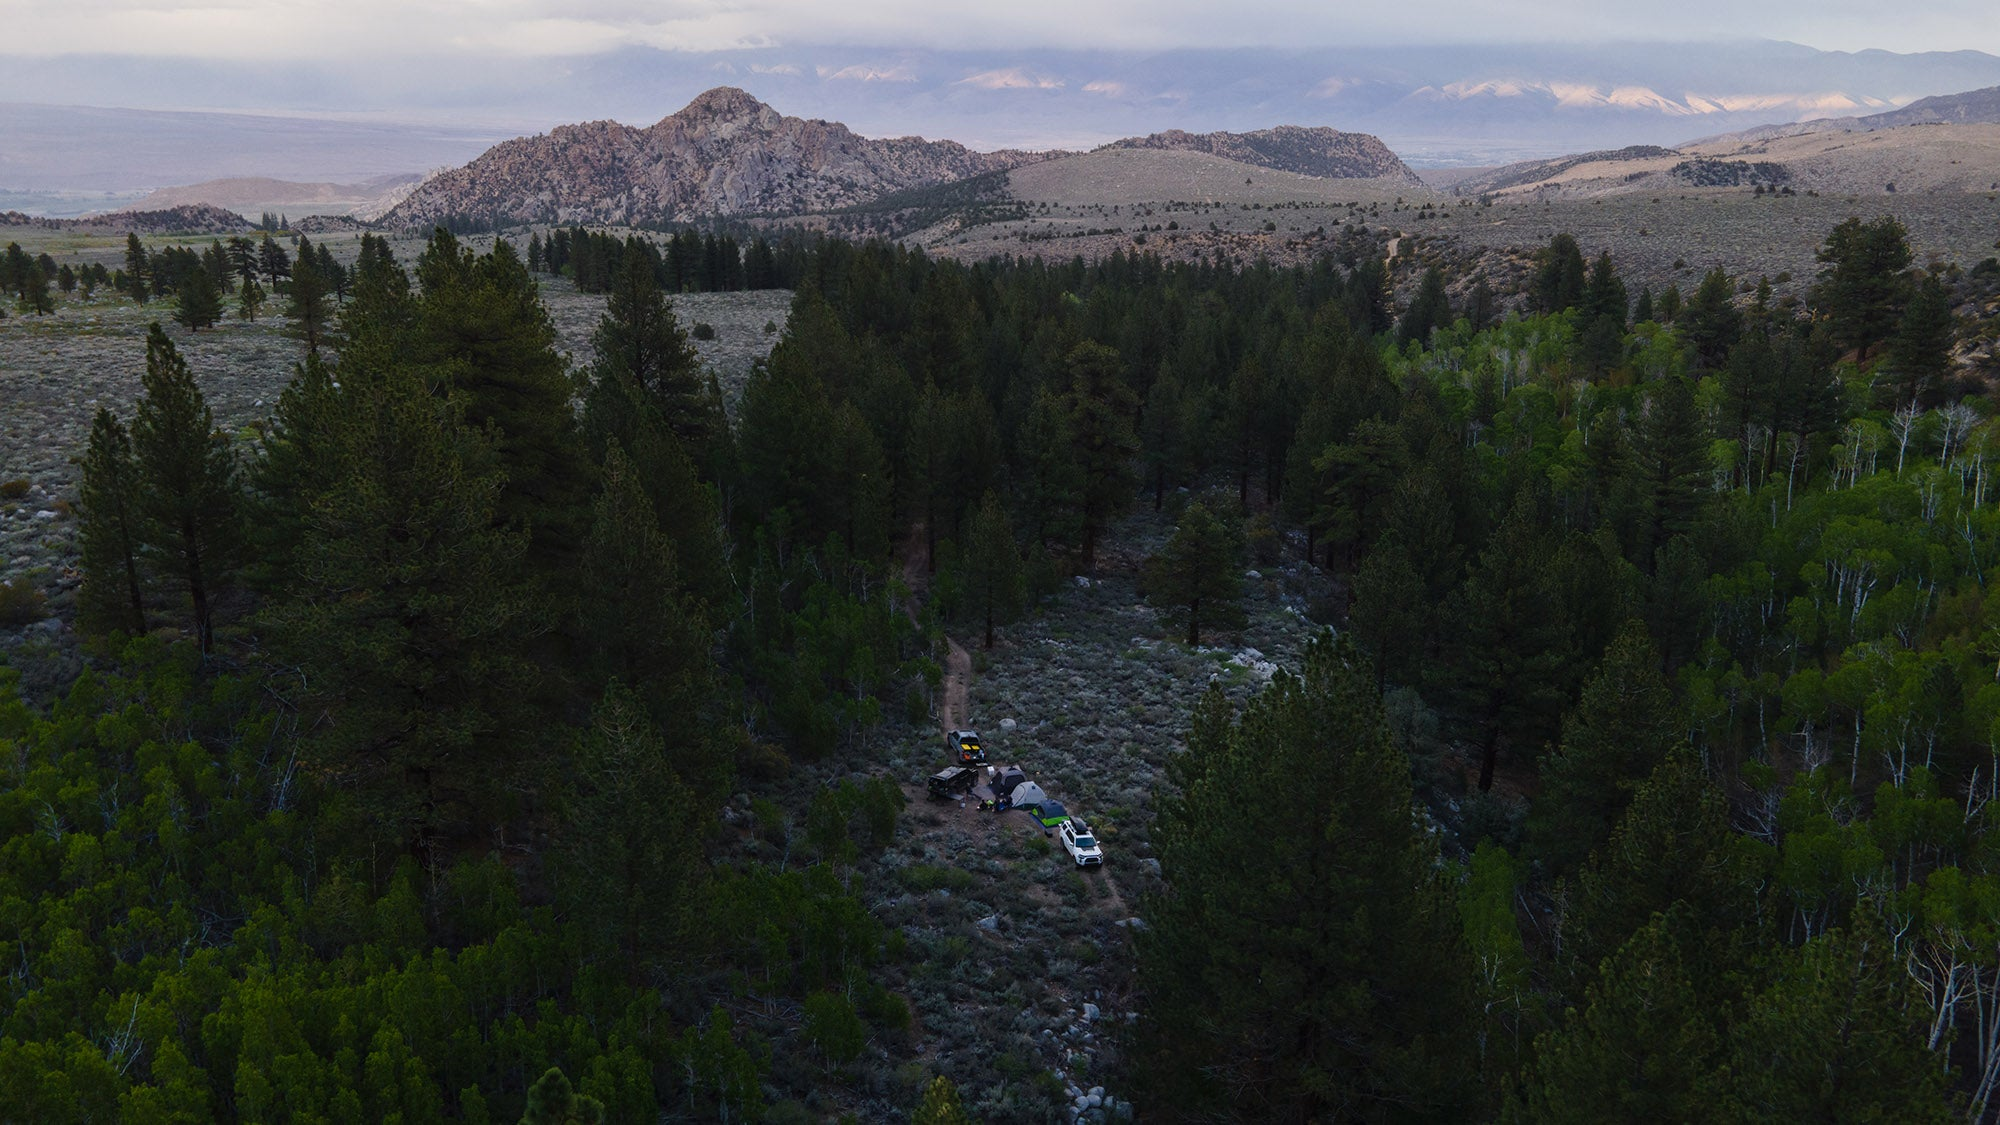 Our remote campsite in the Eastern Sierra Mountains